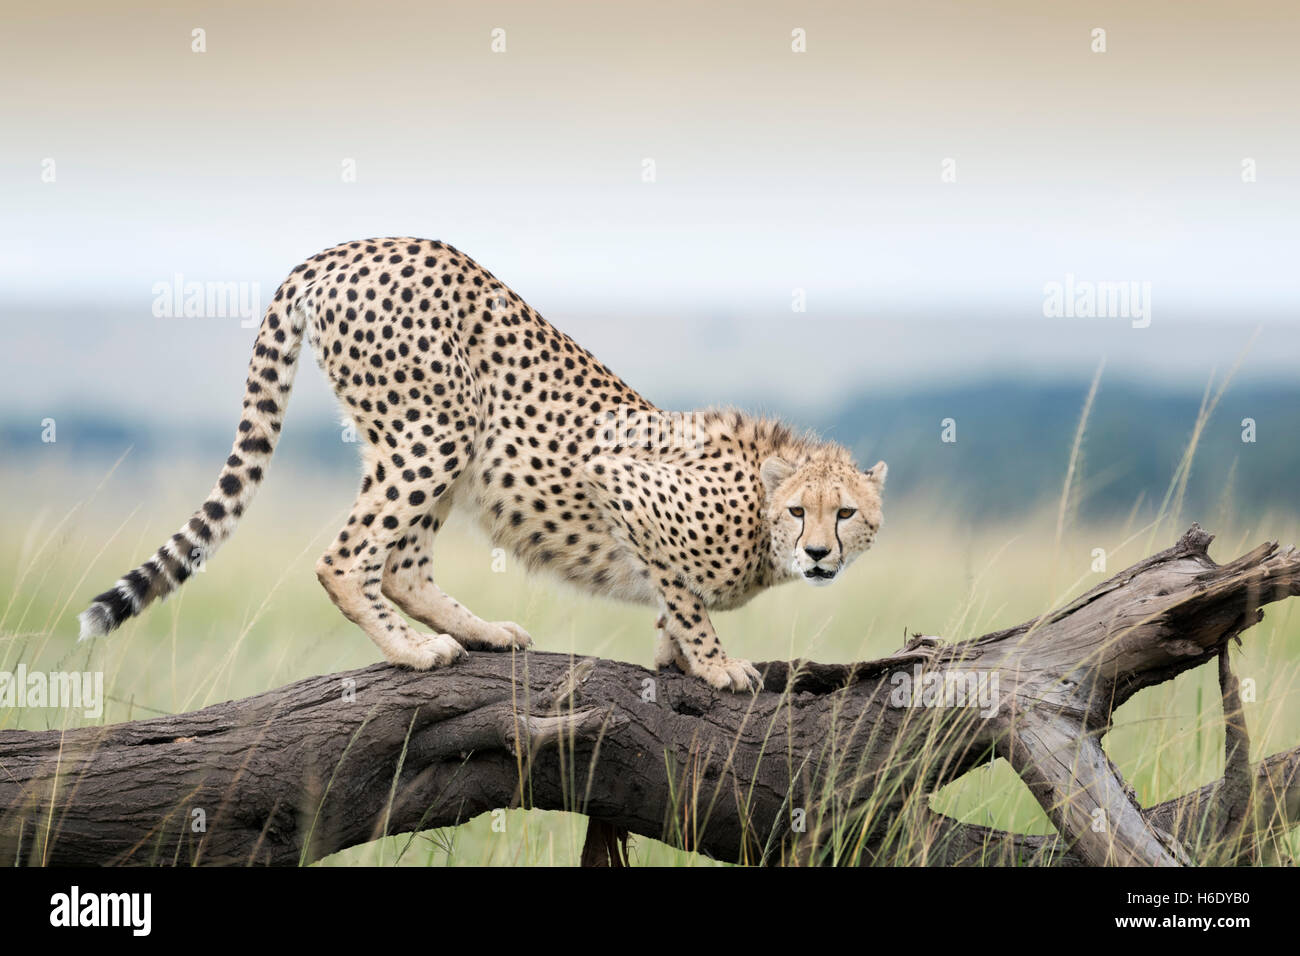 Cheetah (Acinonix jubatus) on fallen tree, Maasai Mara National Reserve, Kenya - Stock Image